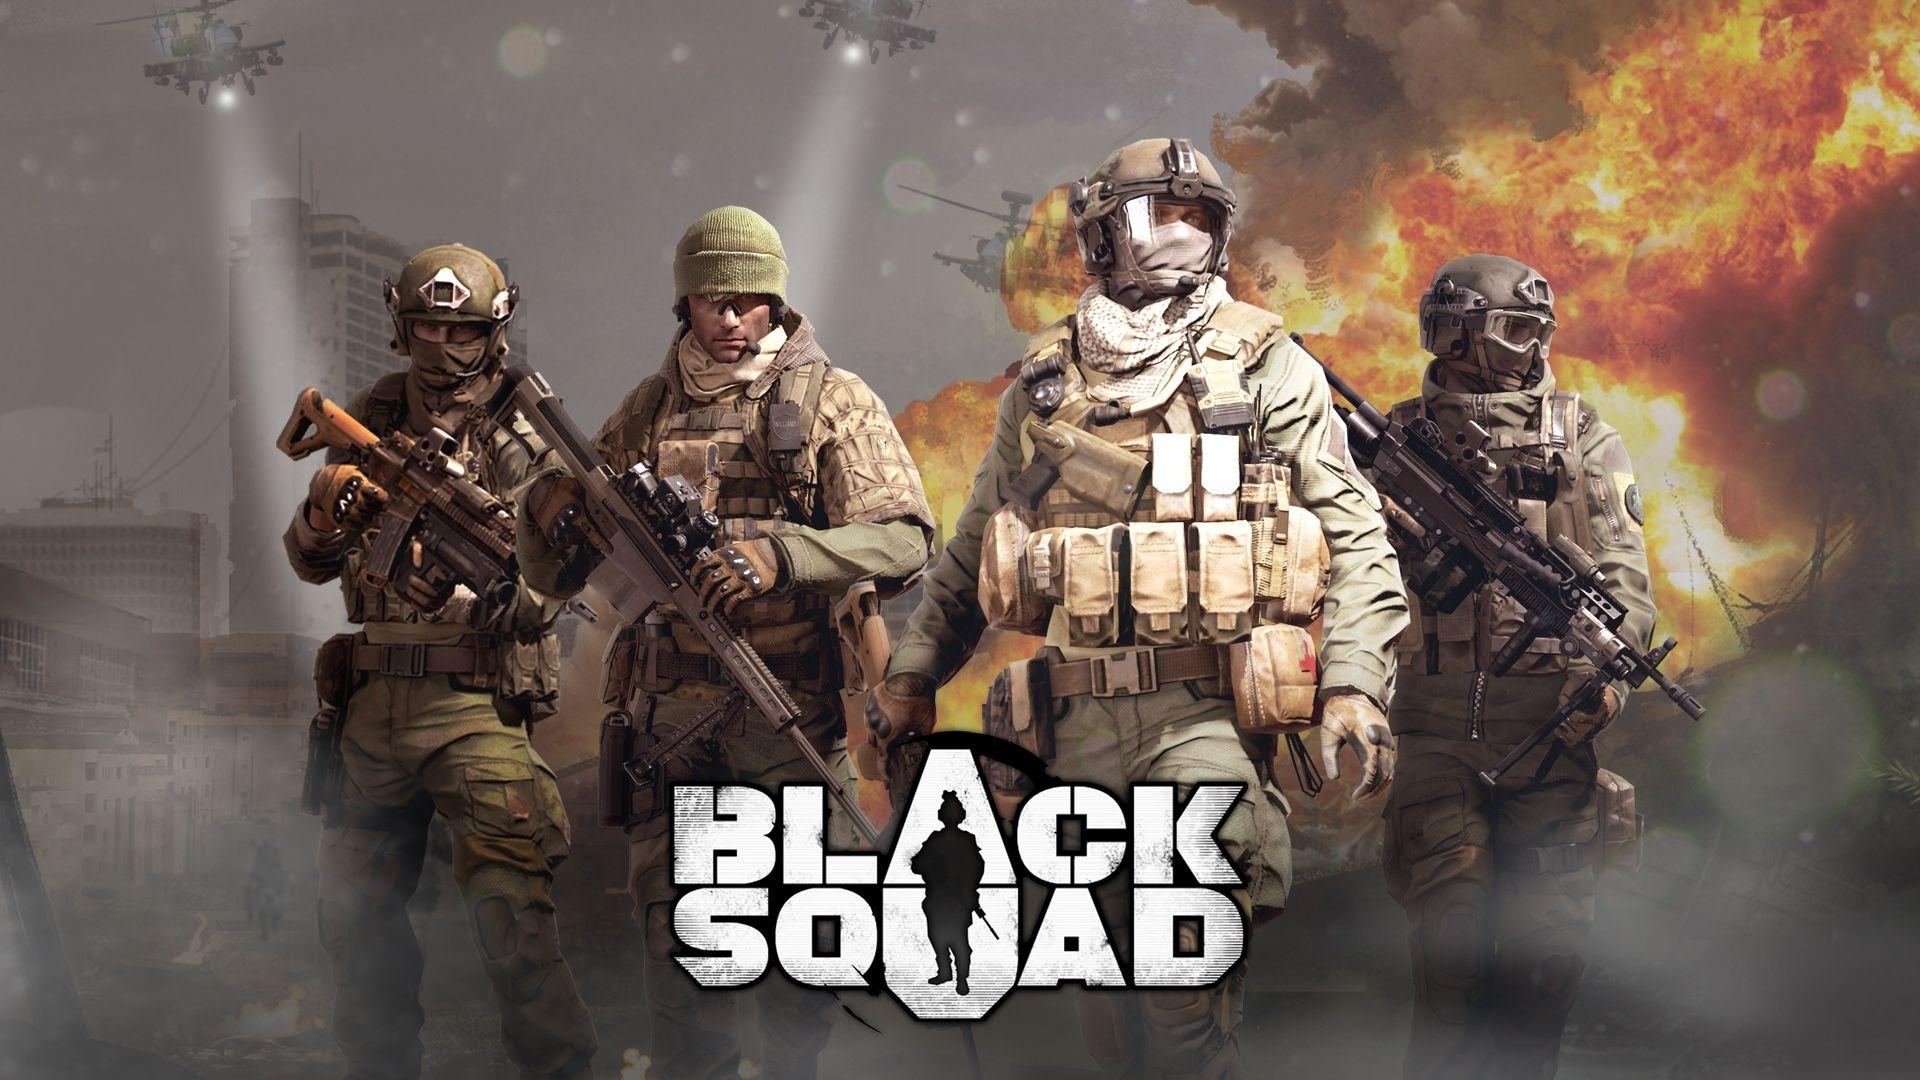 Pubg Squad Wallpapers: Black Squad Wallpapers